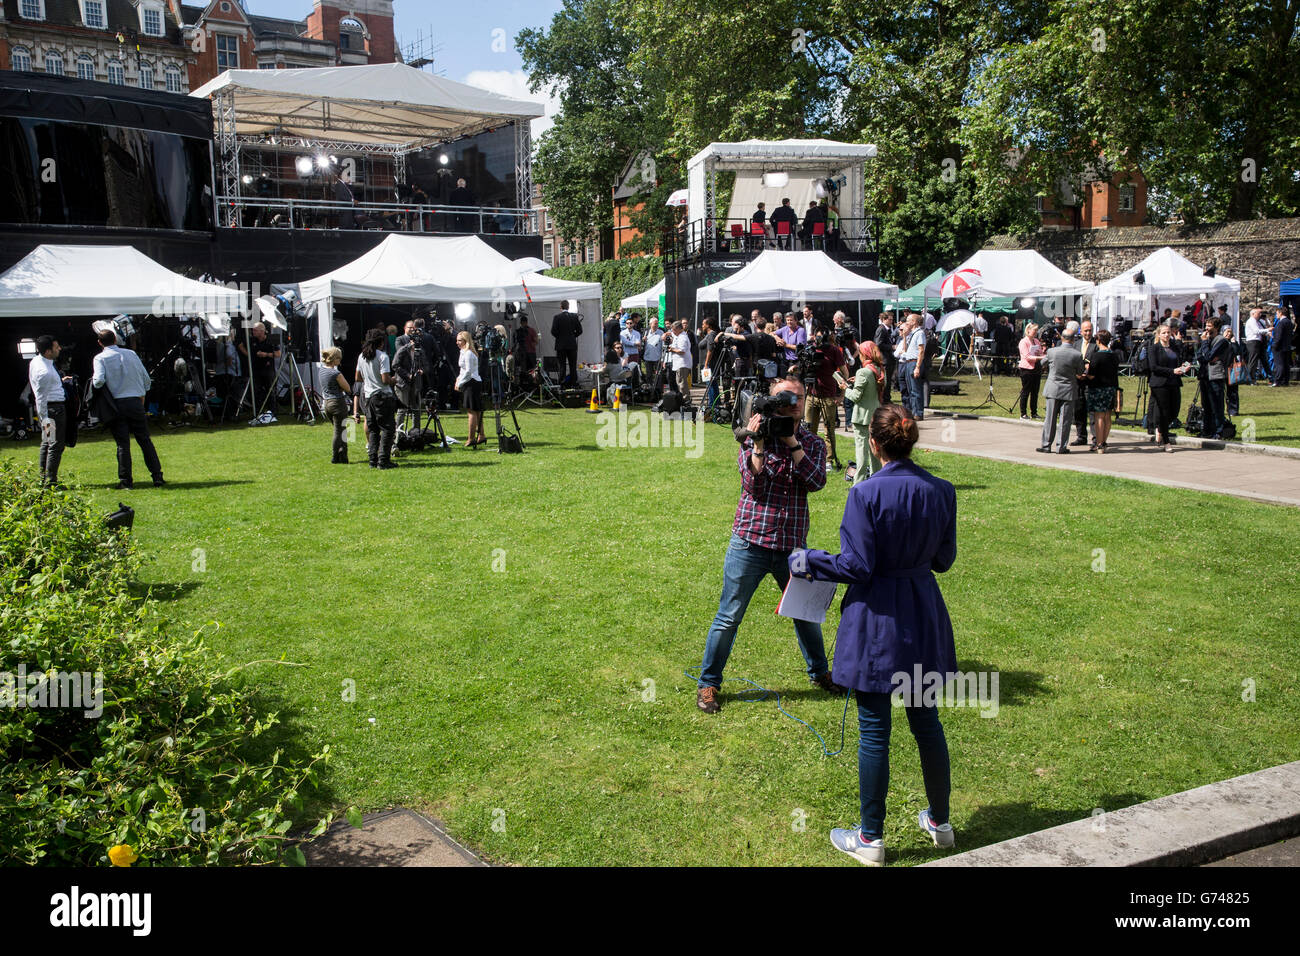 Media tents and people giving interviews on College GreenWestminster the day after the vote to leave the EU & Media tents and people giving interviews on College Green ...